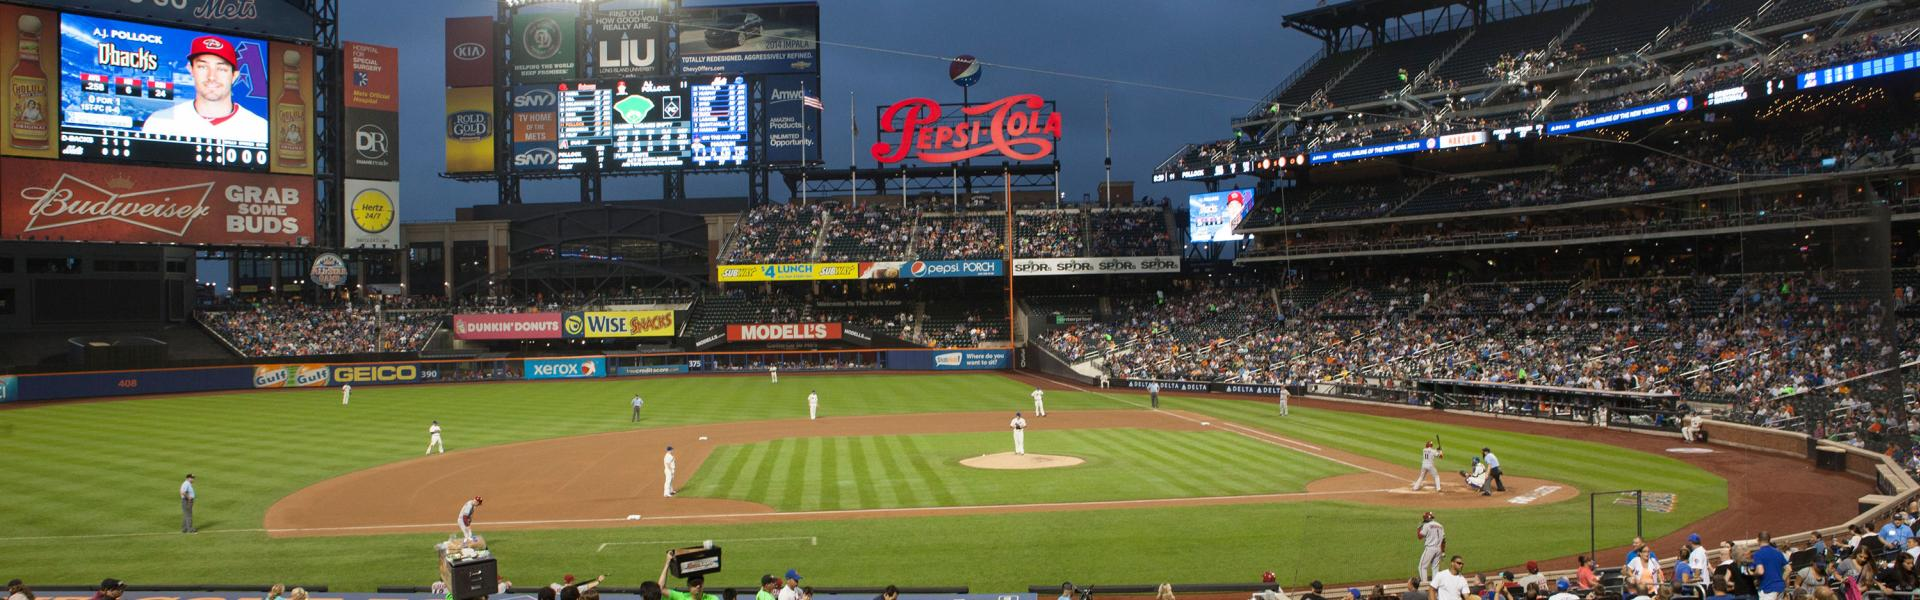 Citi Field Mets Game